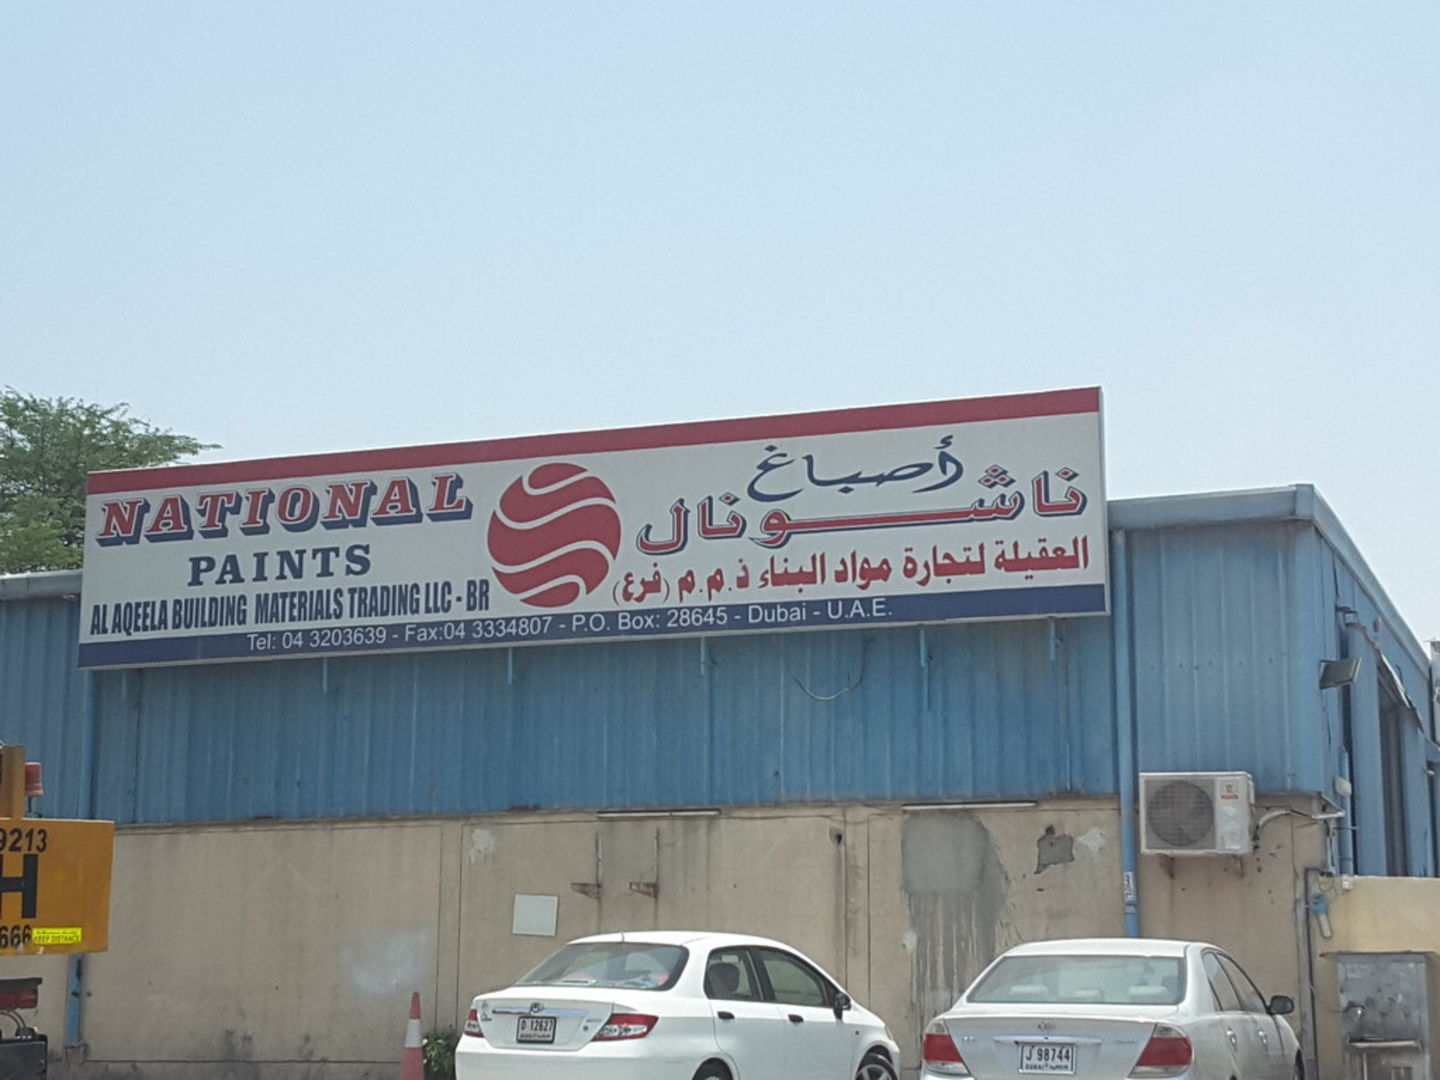 Walif-business-al-aqeela-building-materials-trading-national-paints